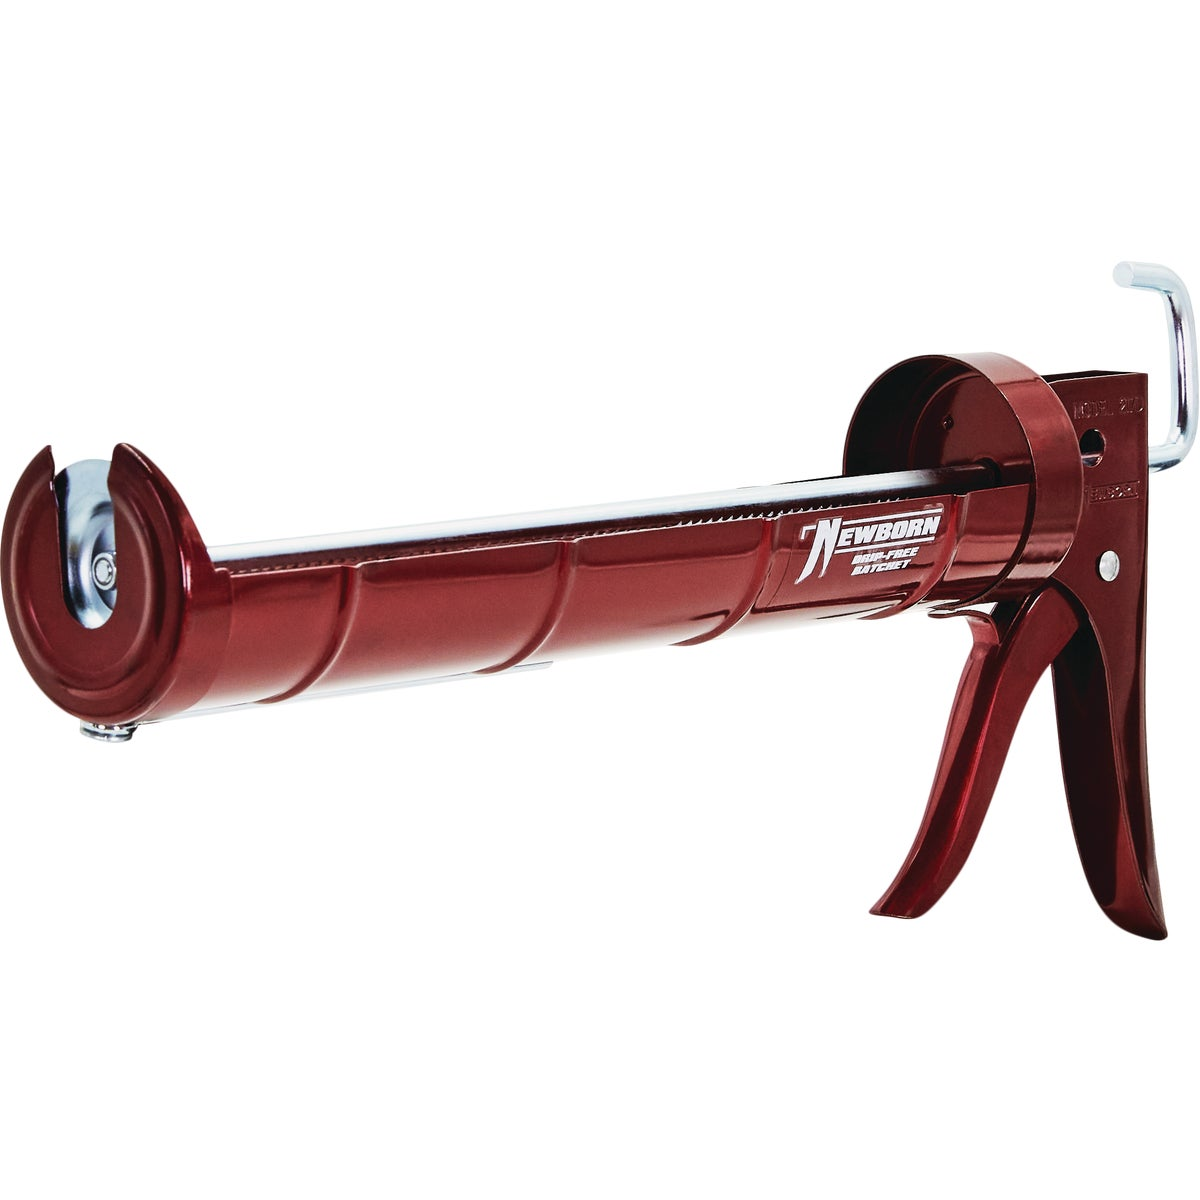 QT RATCHET CAULK GUN - CR400 by Dripless Inc